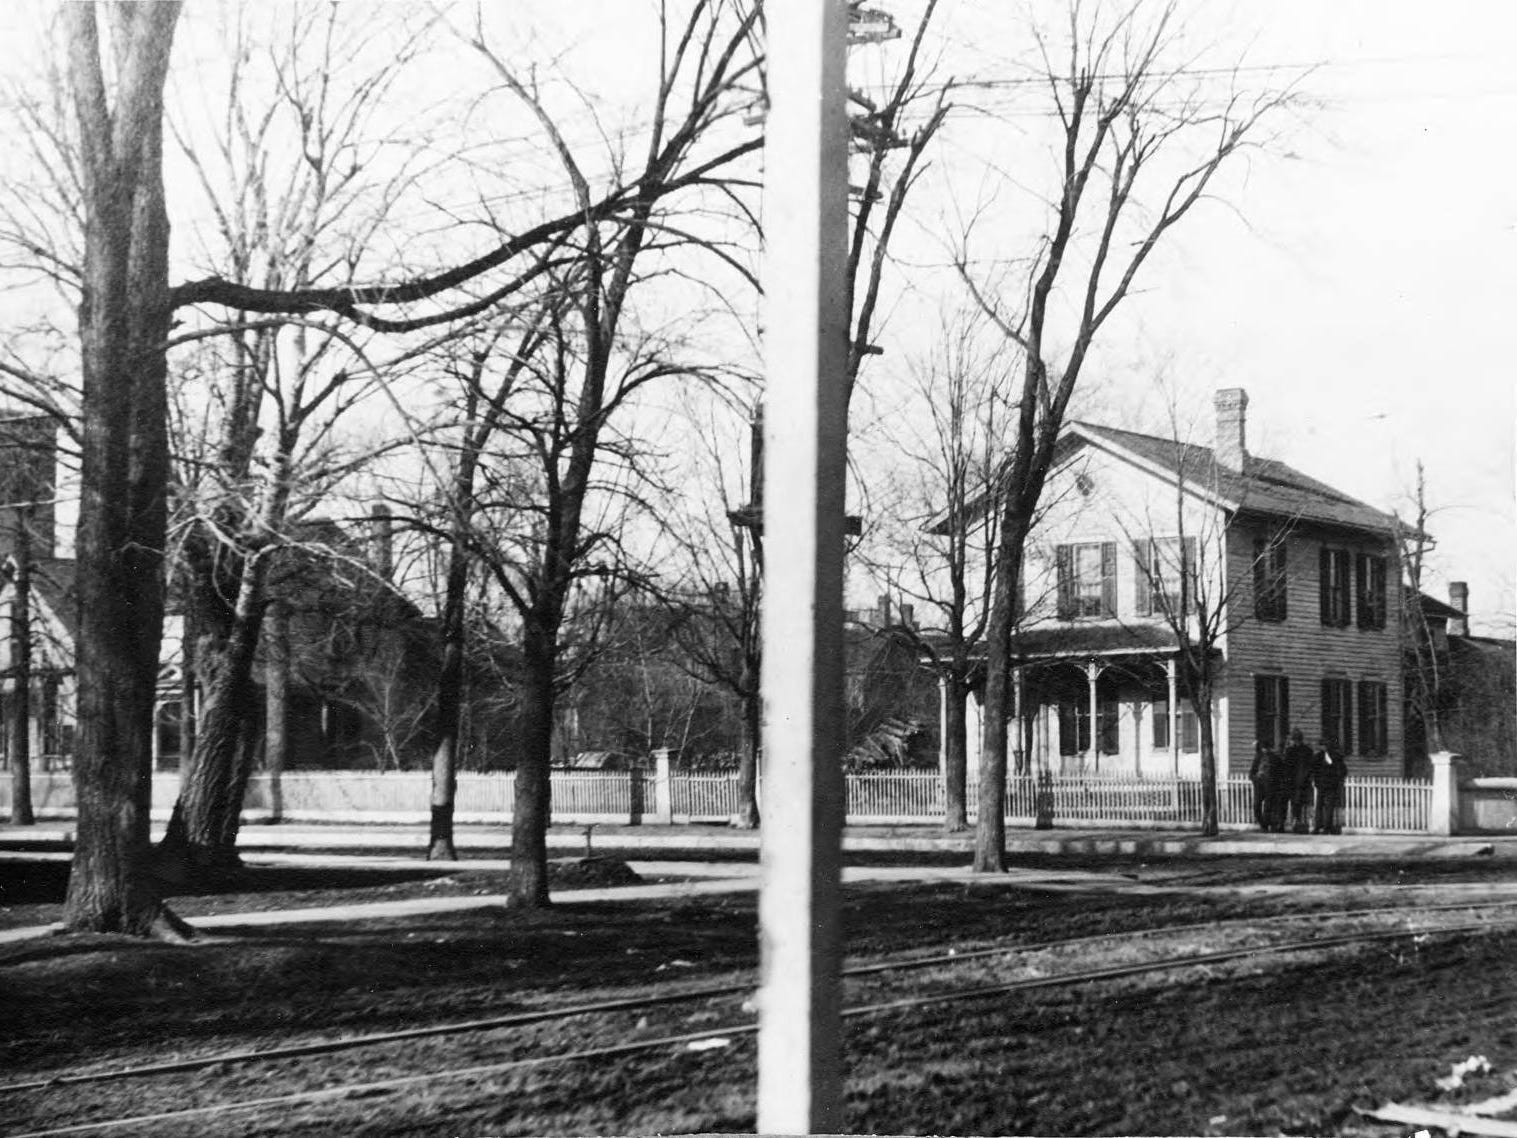 The former home of Henry Jackson. Jackson named the community Centralia in 1894 and was the first postmaster and was involved in politics. This house was moved to the 200 block of Third Avenue South to make room for the Johnson & Hill Department Store in 1912.